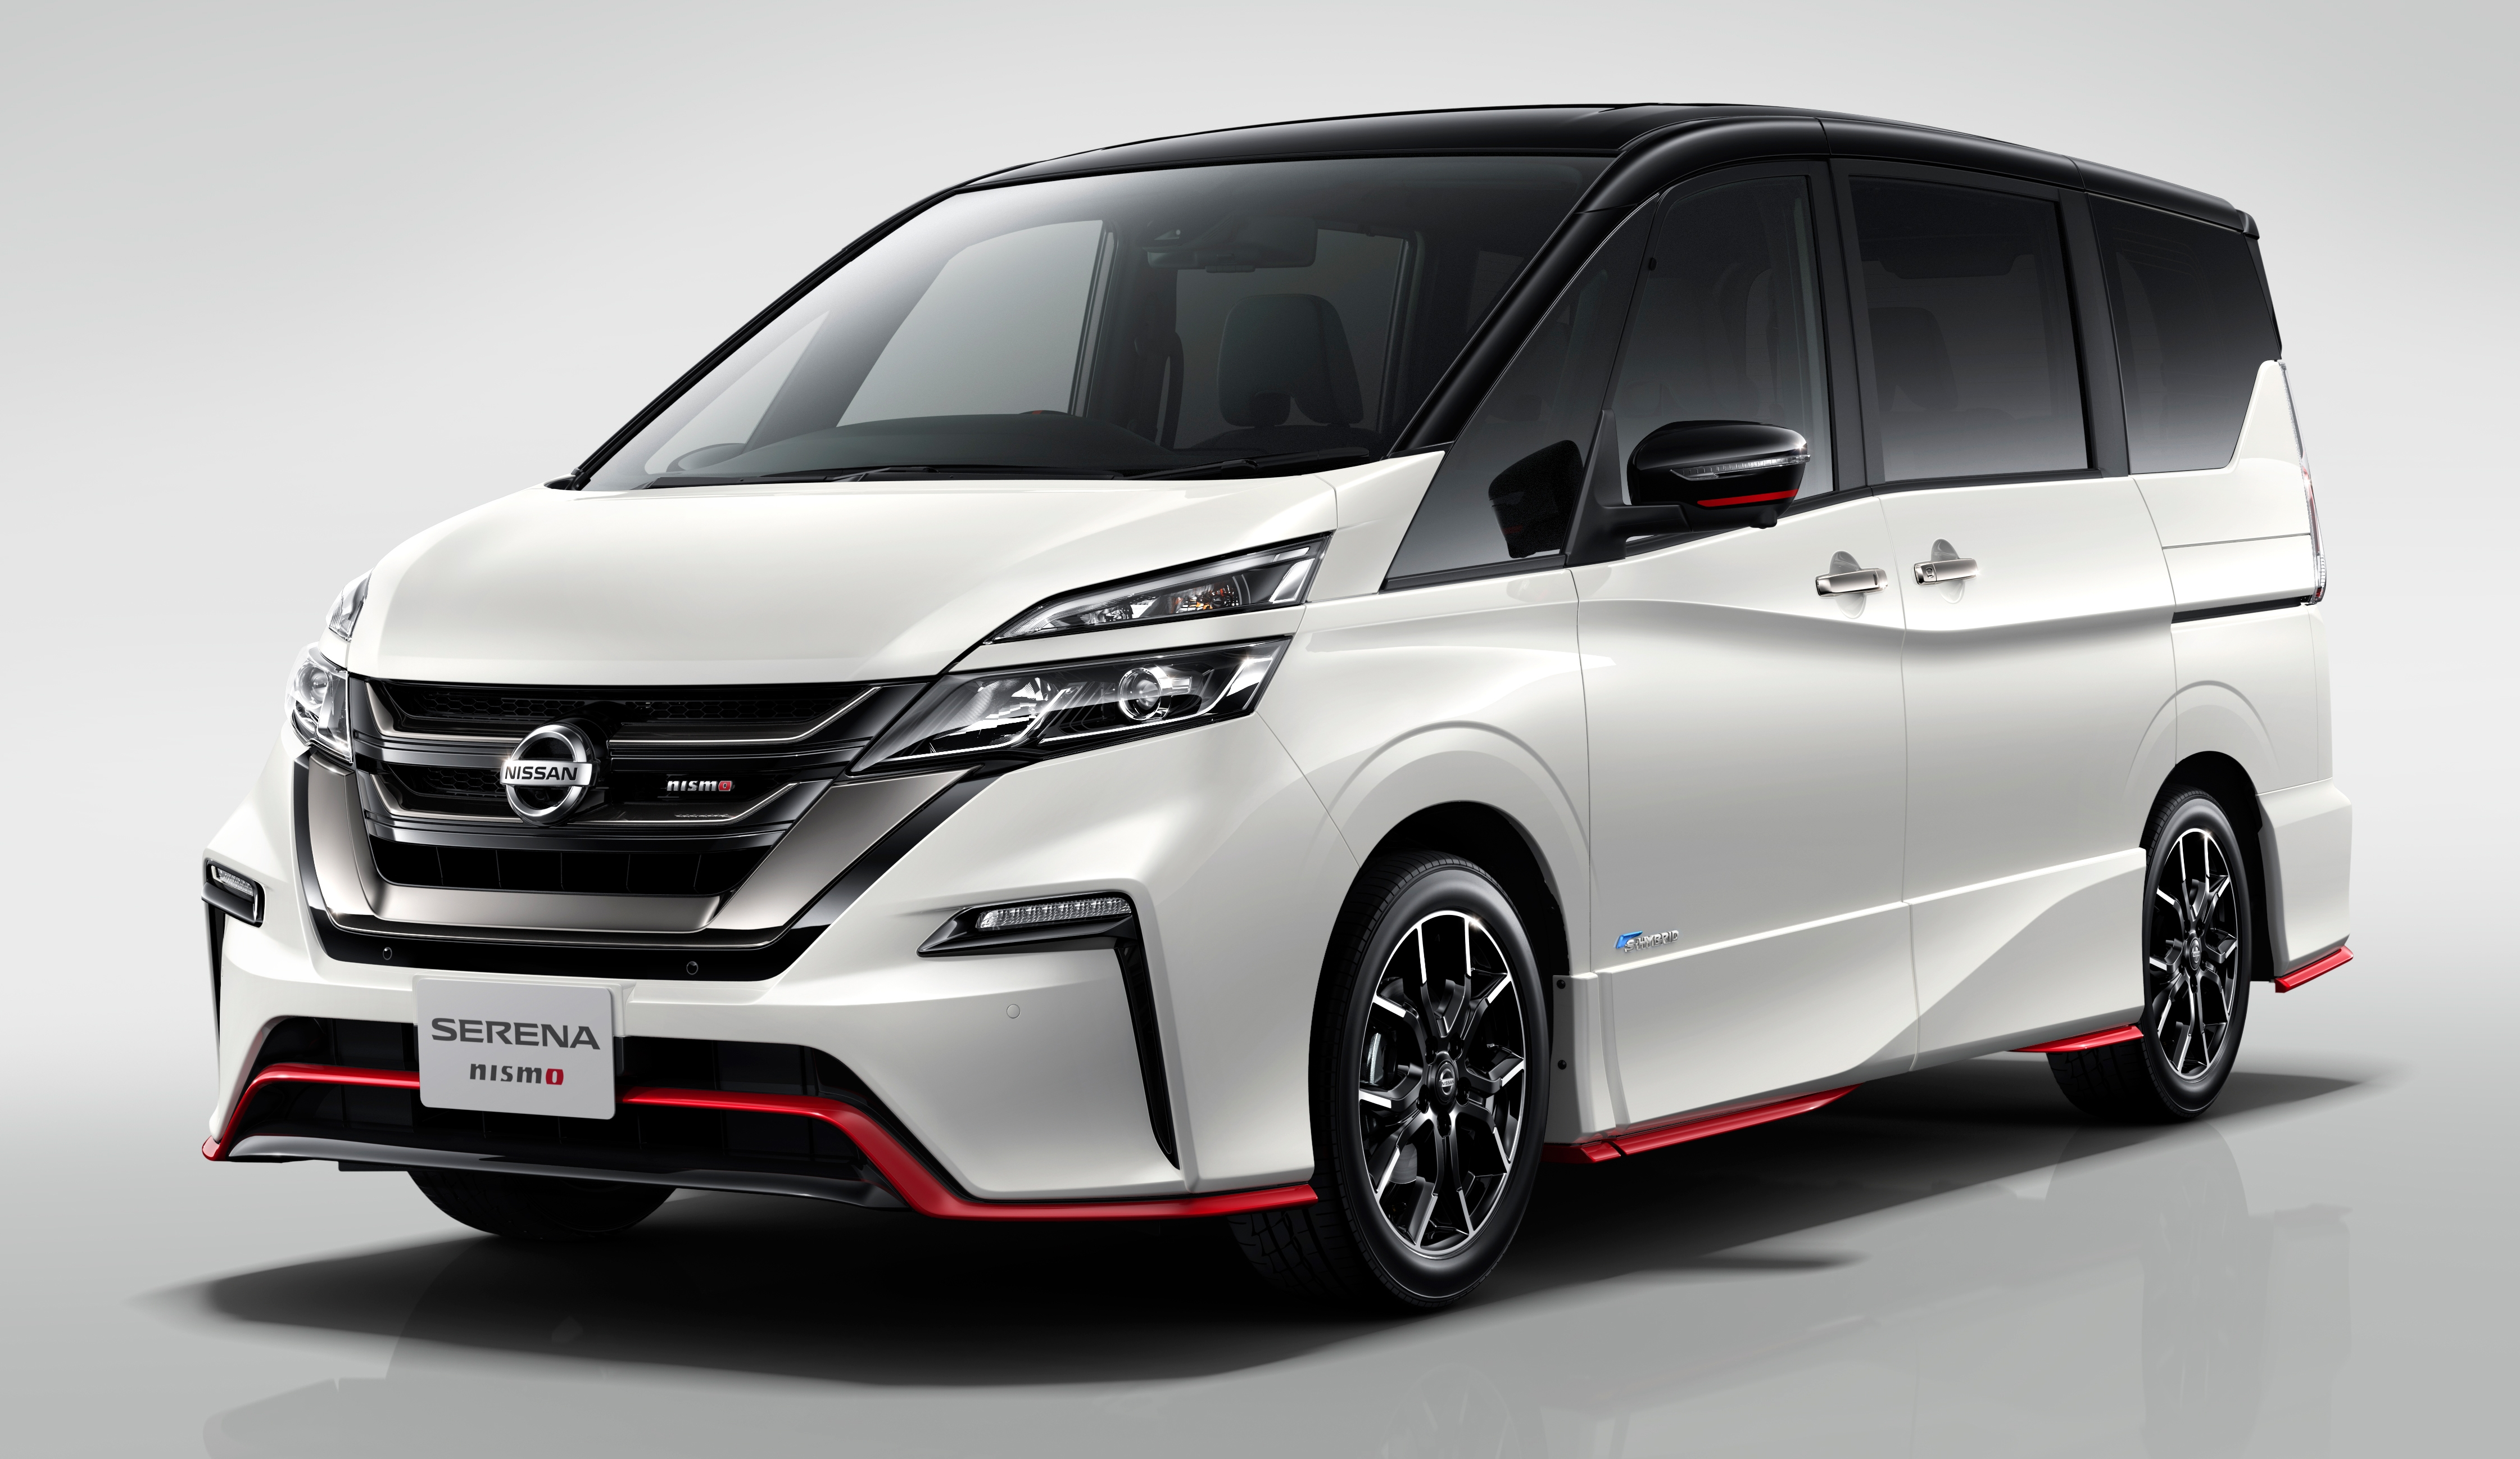 Nissan Serena Nismo Makes For A Sportier Proposition Image